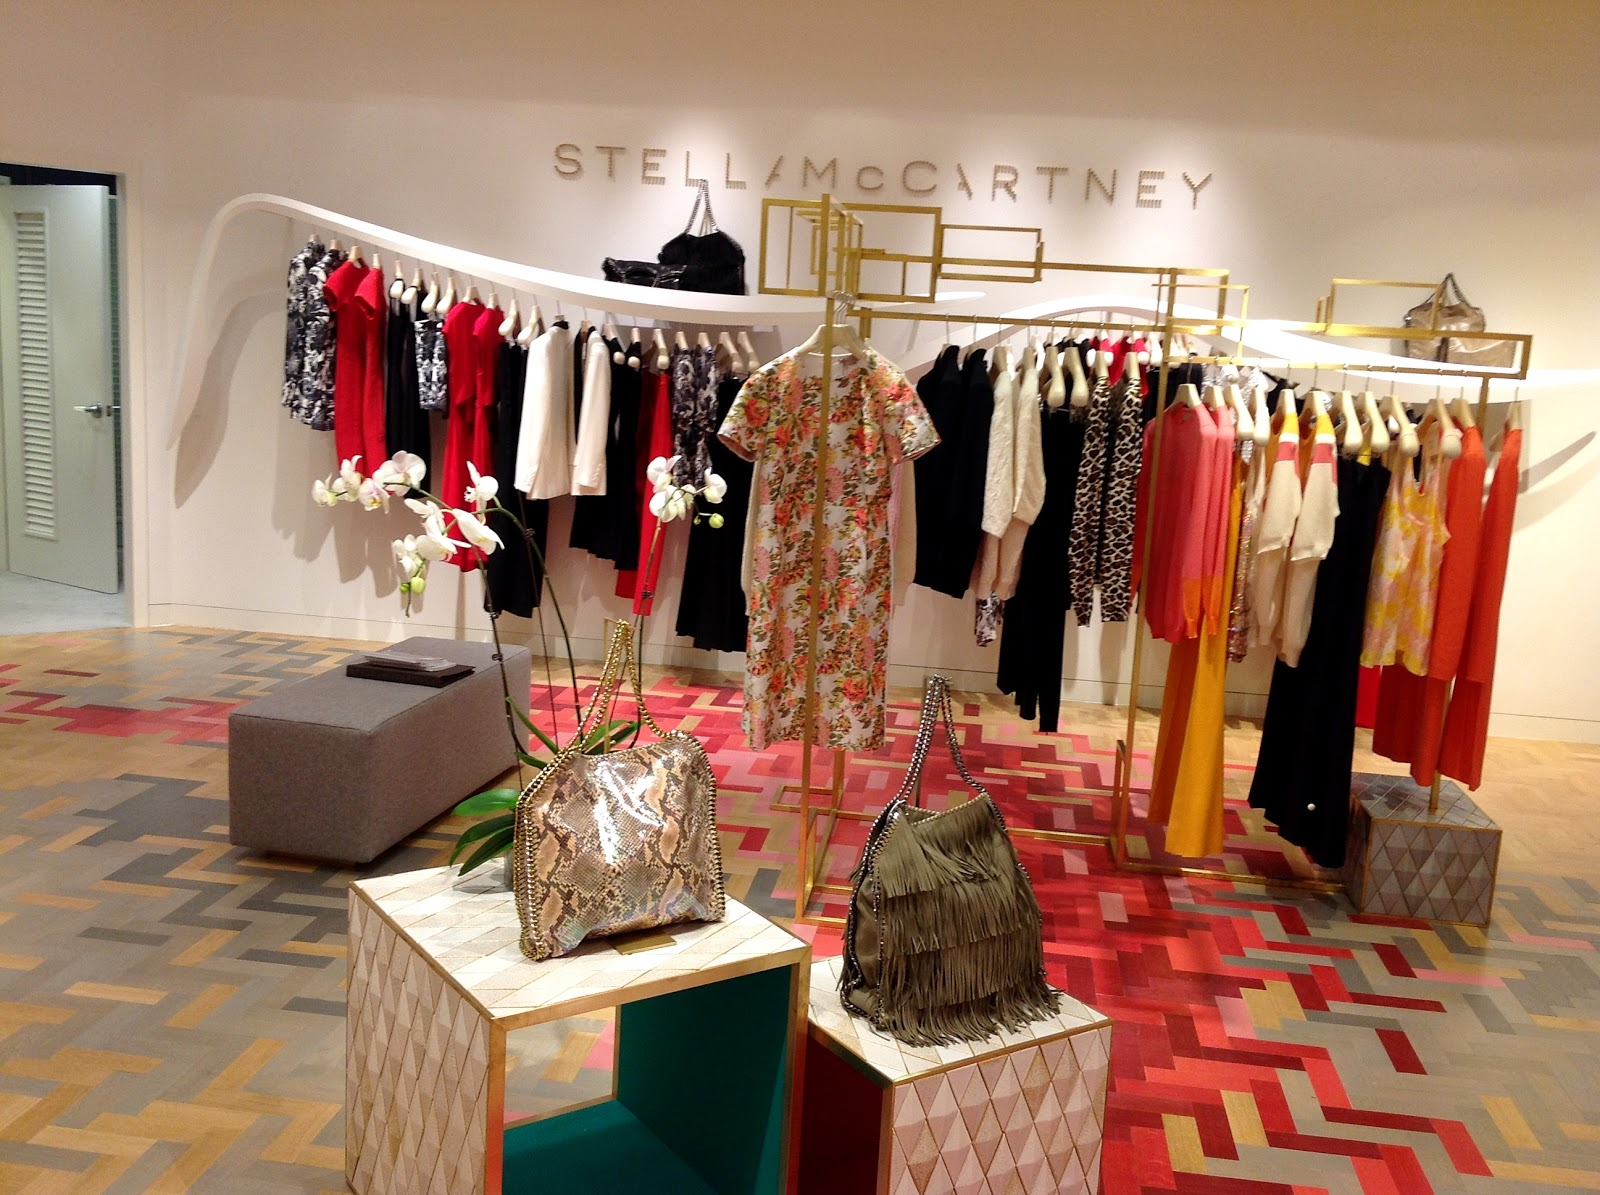 b48cf194e931 a special thank you to the team over at Saks in Boca Raton for your  hospitality and to Stella McCartney for allowing us to chat with her and  spend an ...